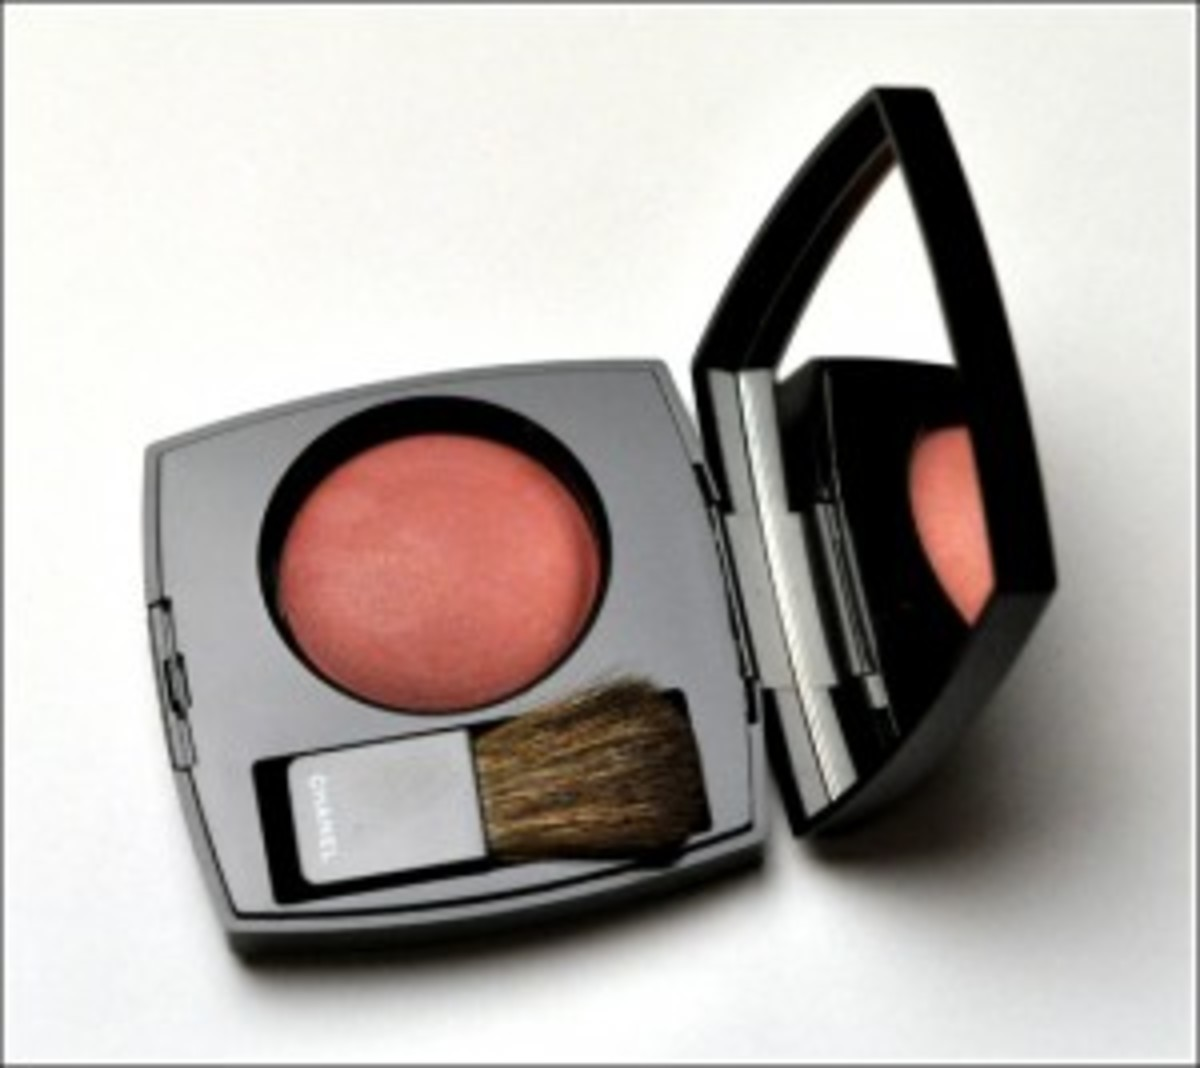 chanel-fall-2010-makeup-rose-temptation-blush-300x267